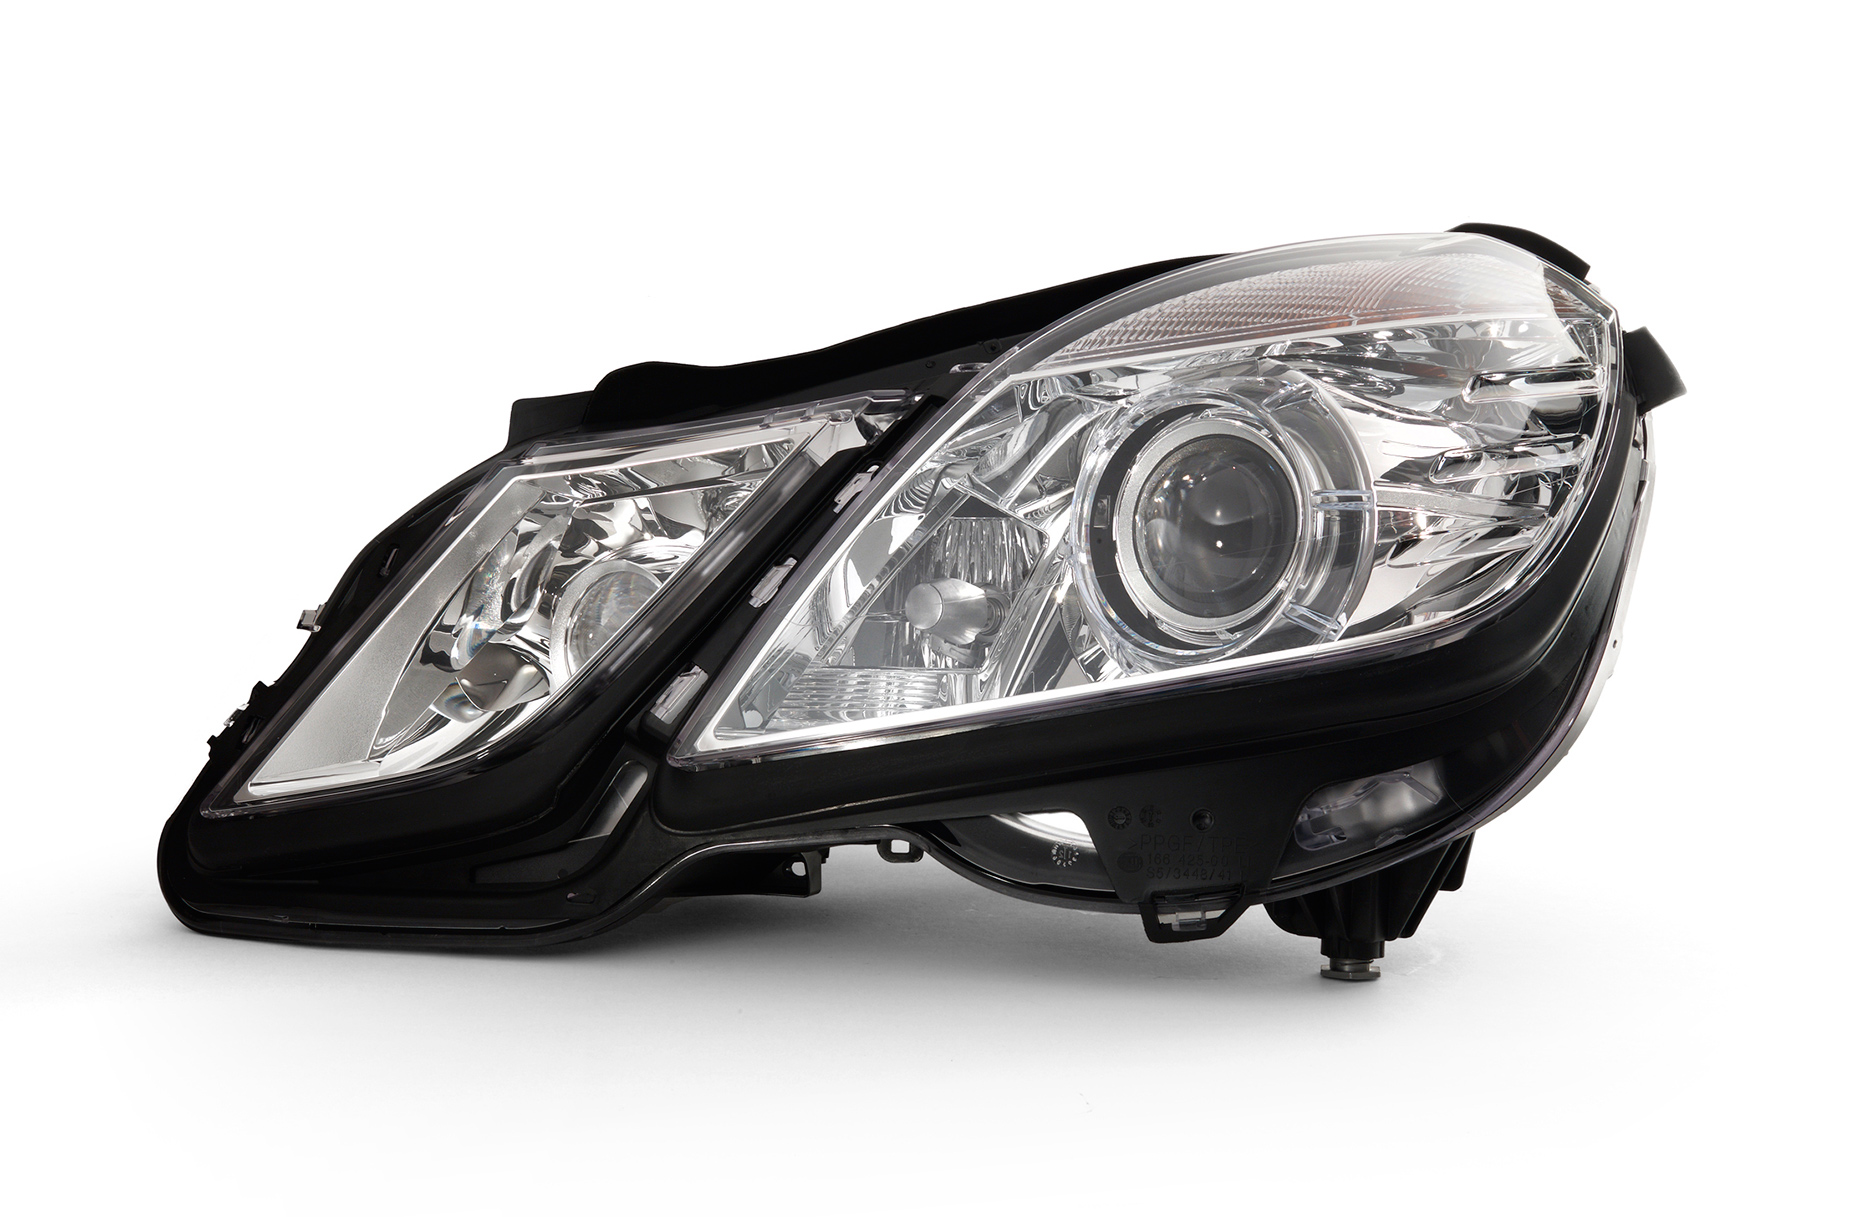 Headlight_(212)_(374)_prepped